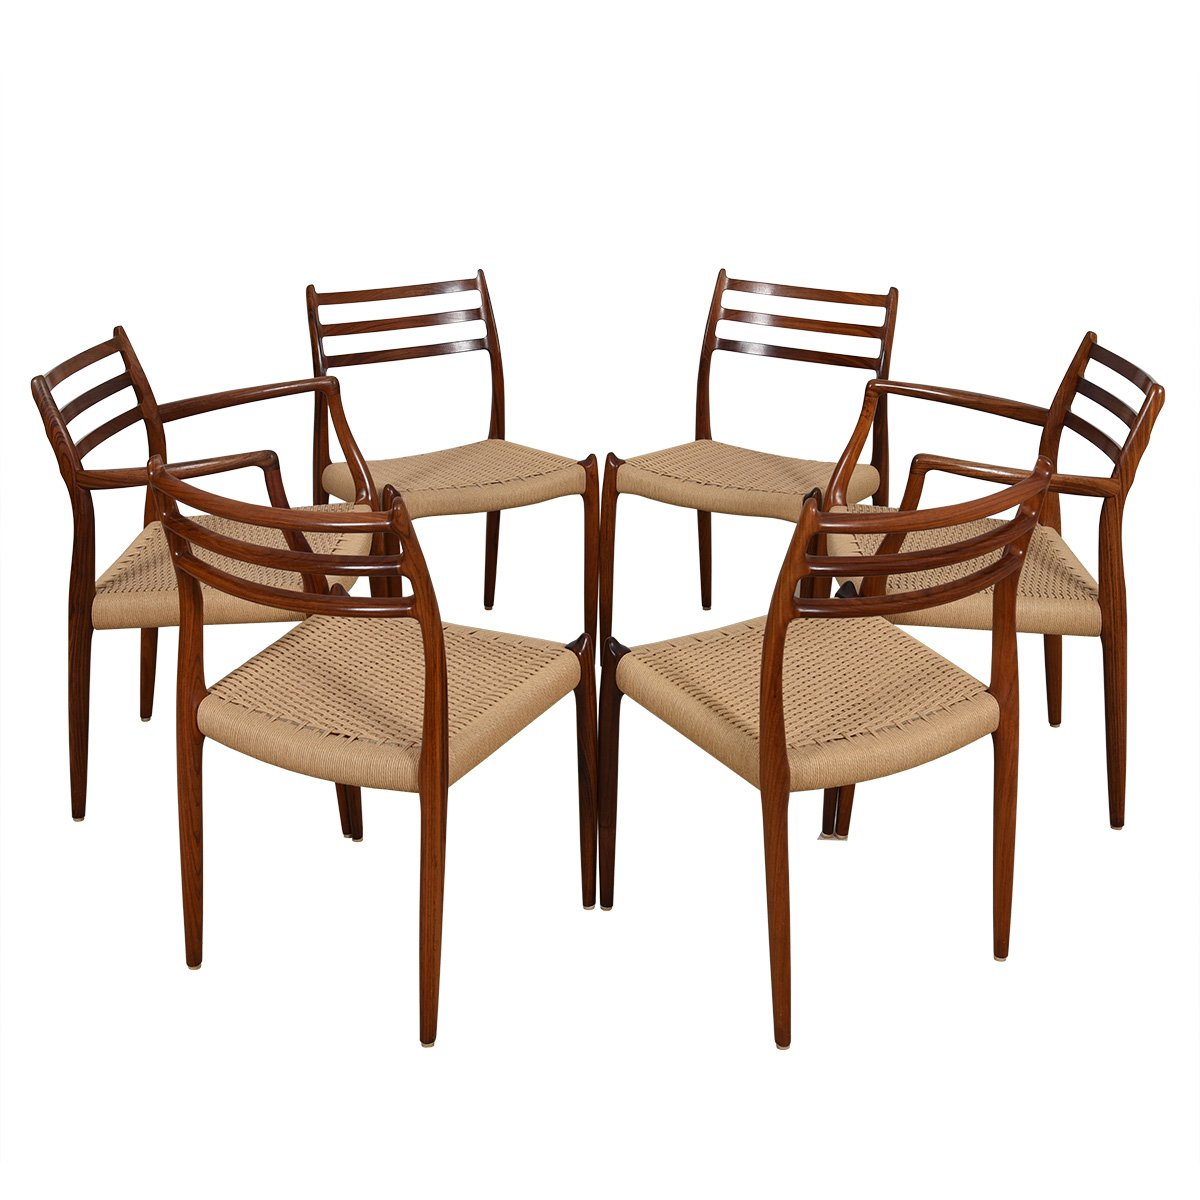 Set of 6 Rosewood Dining Chairs 2 Arm (Model #62) + 4 Side (Model #78) by Niels Moller